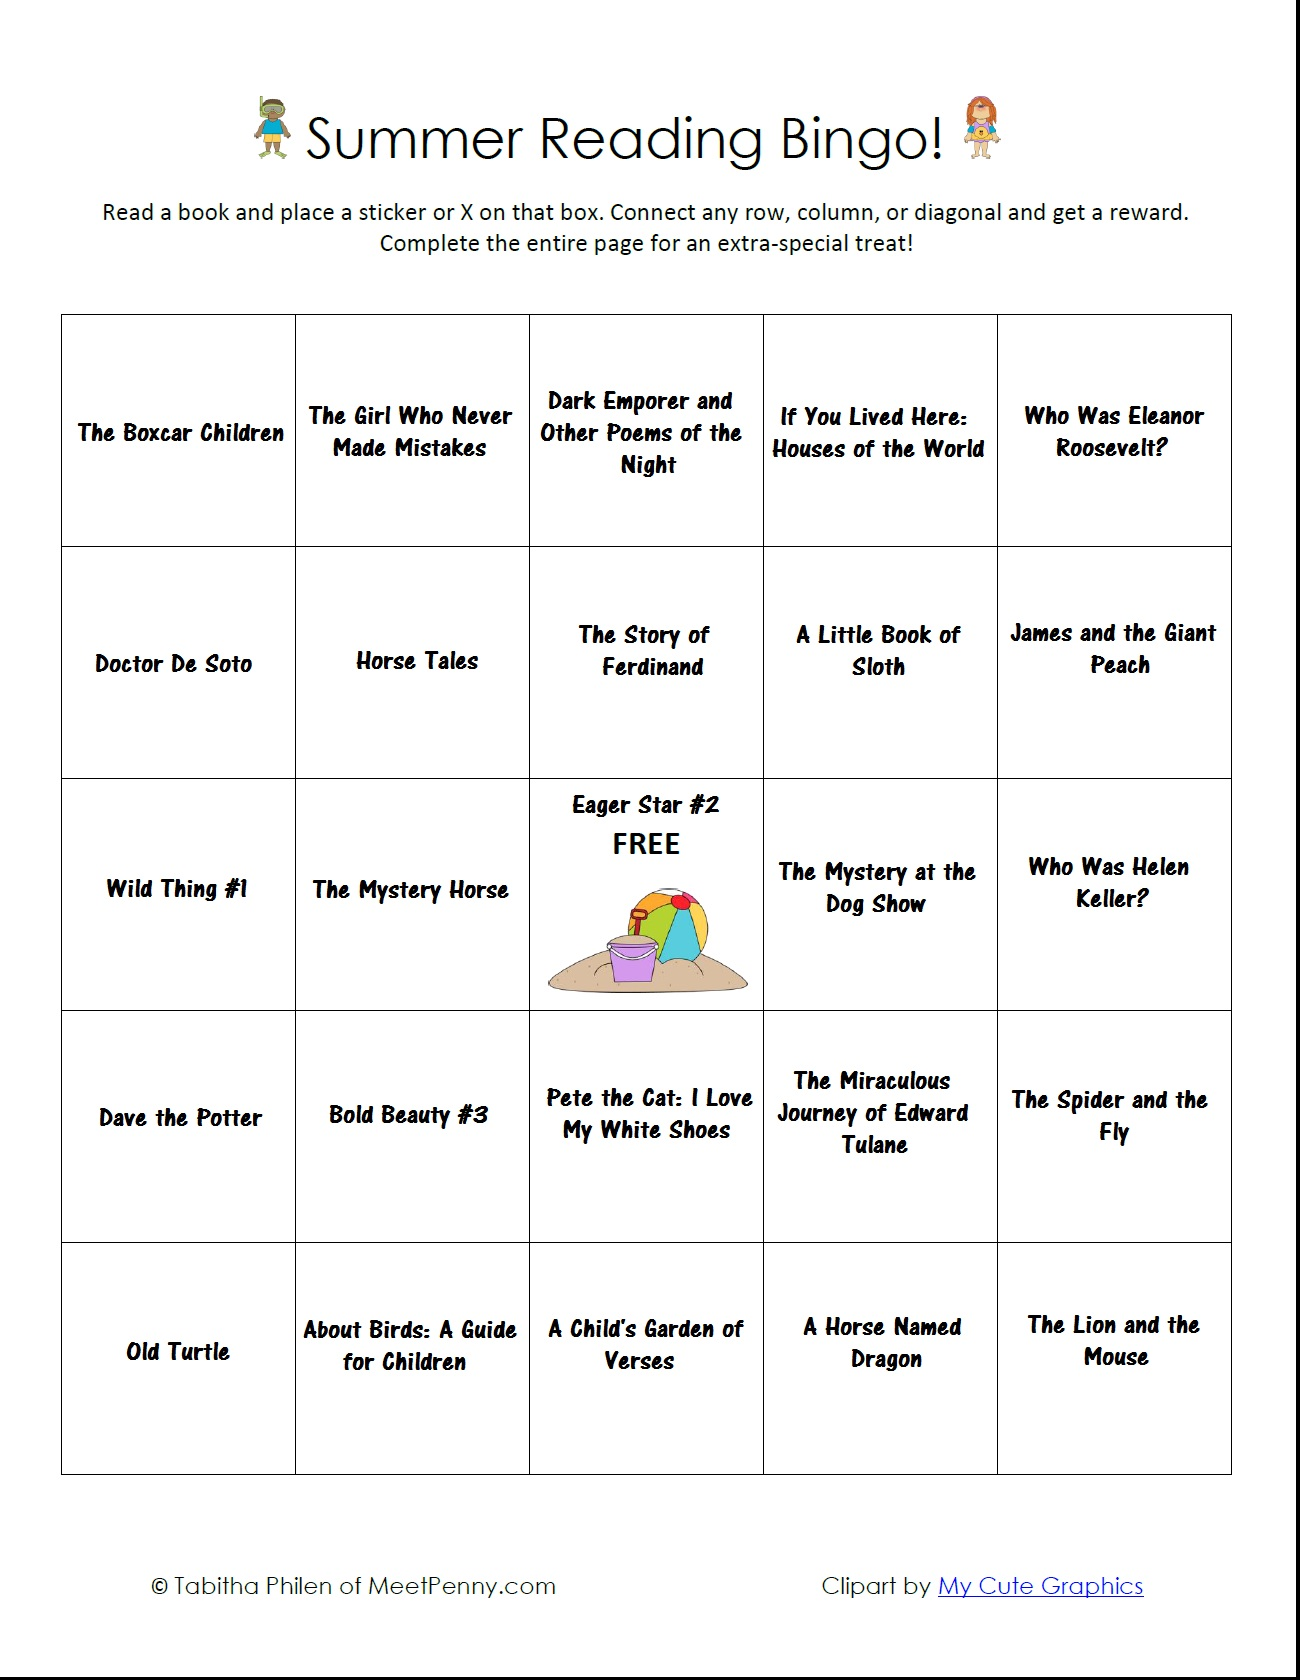 Summer Reading Bingo Free Printable